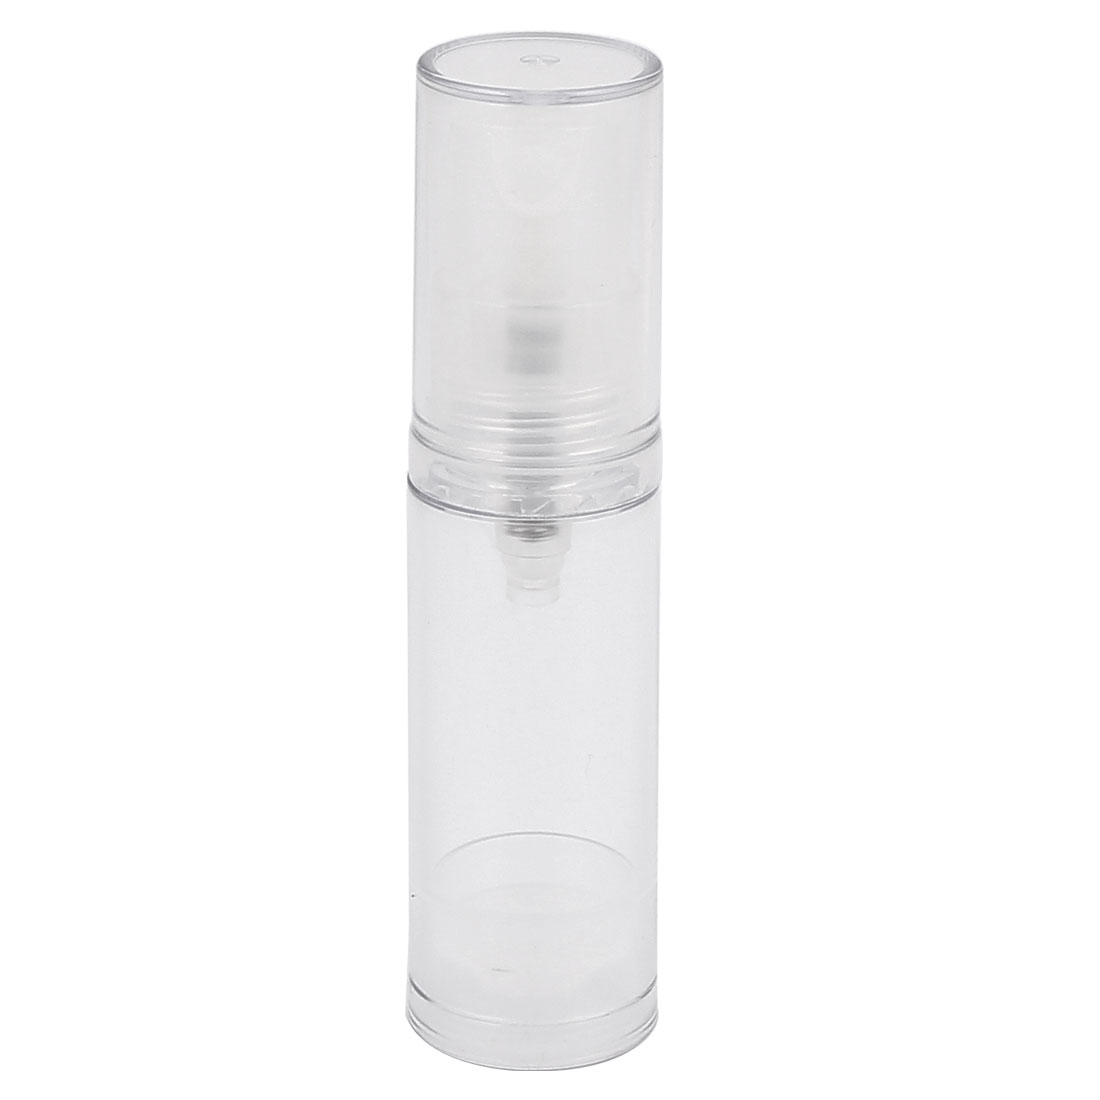 Clear Plastic Skin Cosmetic Water Liquid Spray Bottle Perfume Container Holder 5ml for Lady